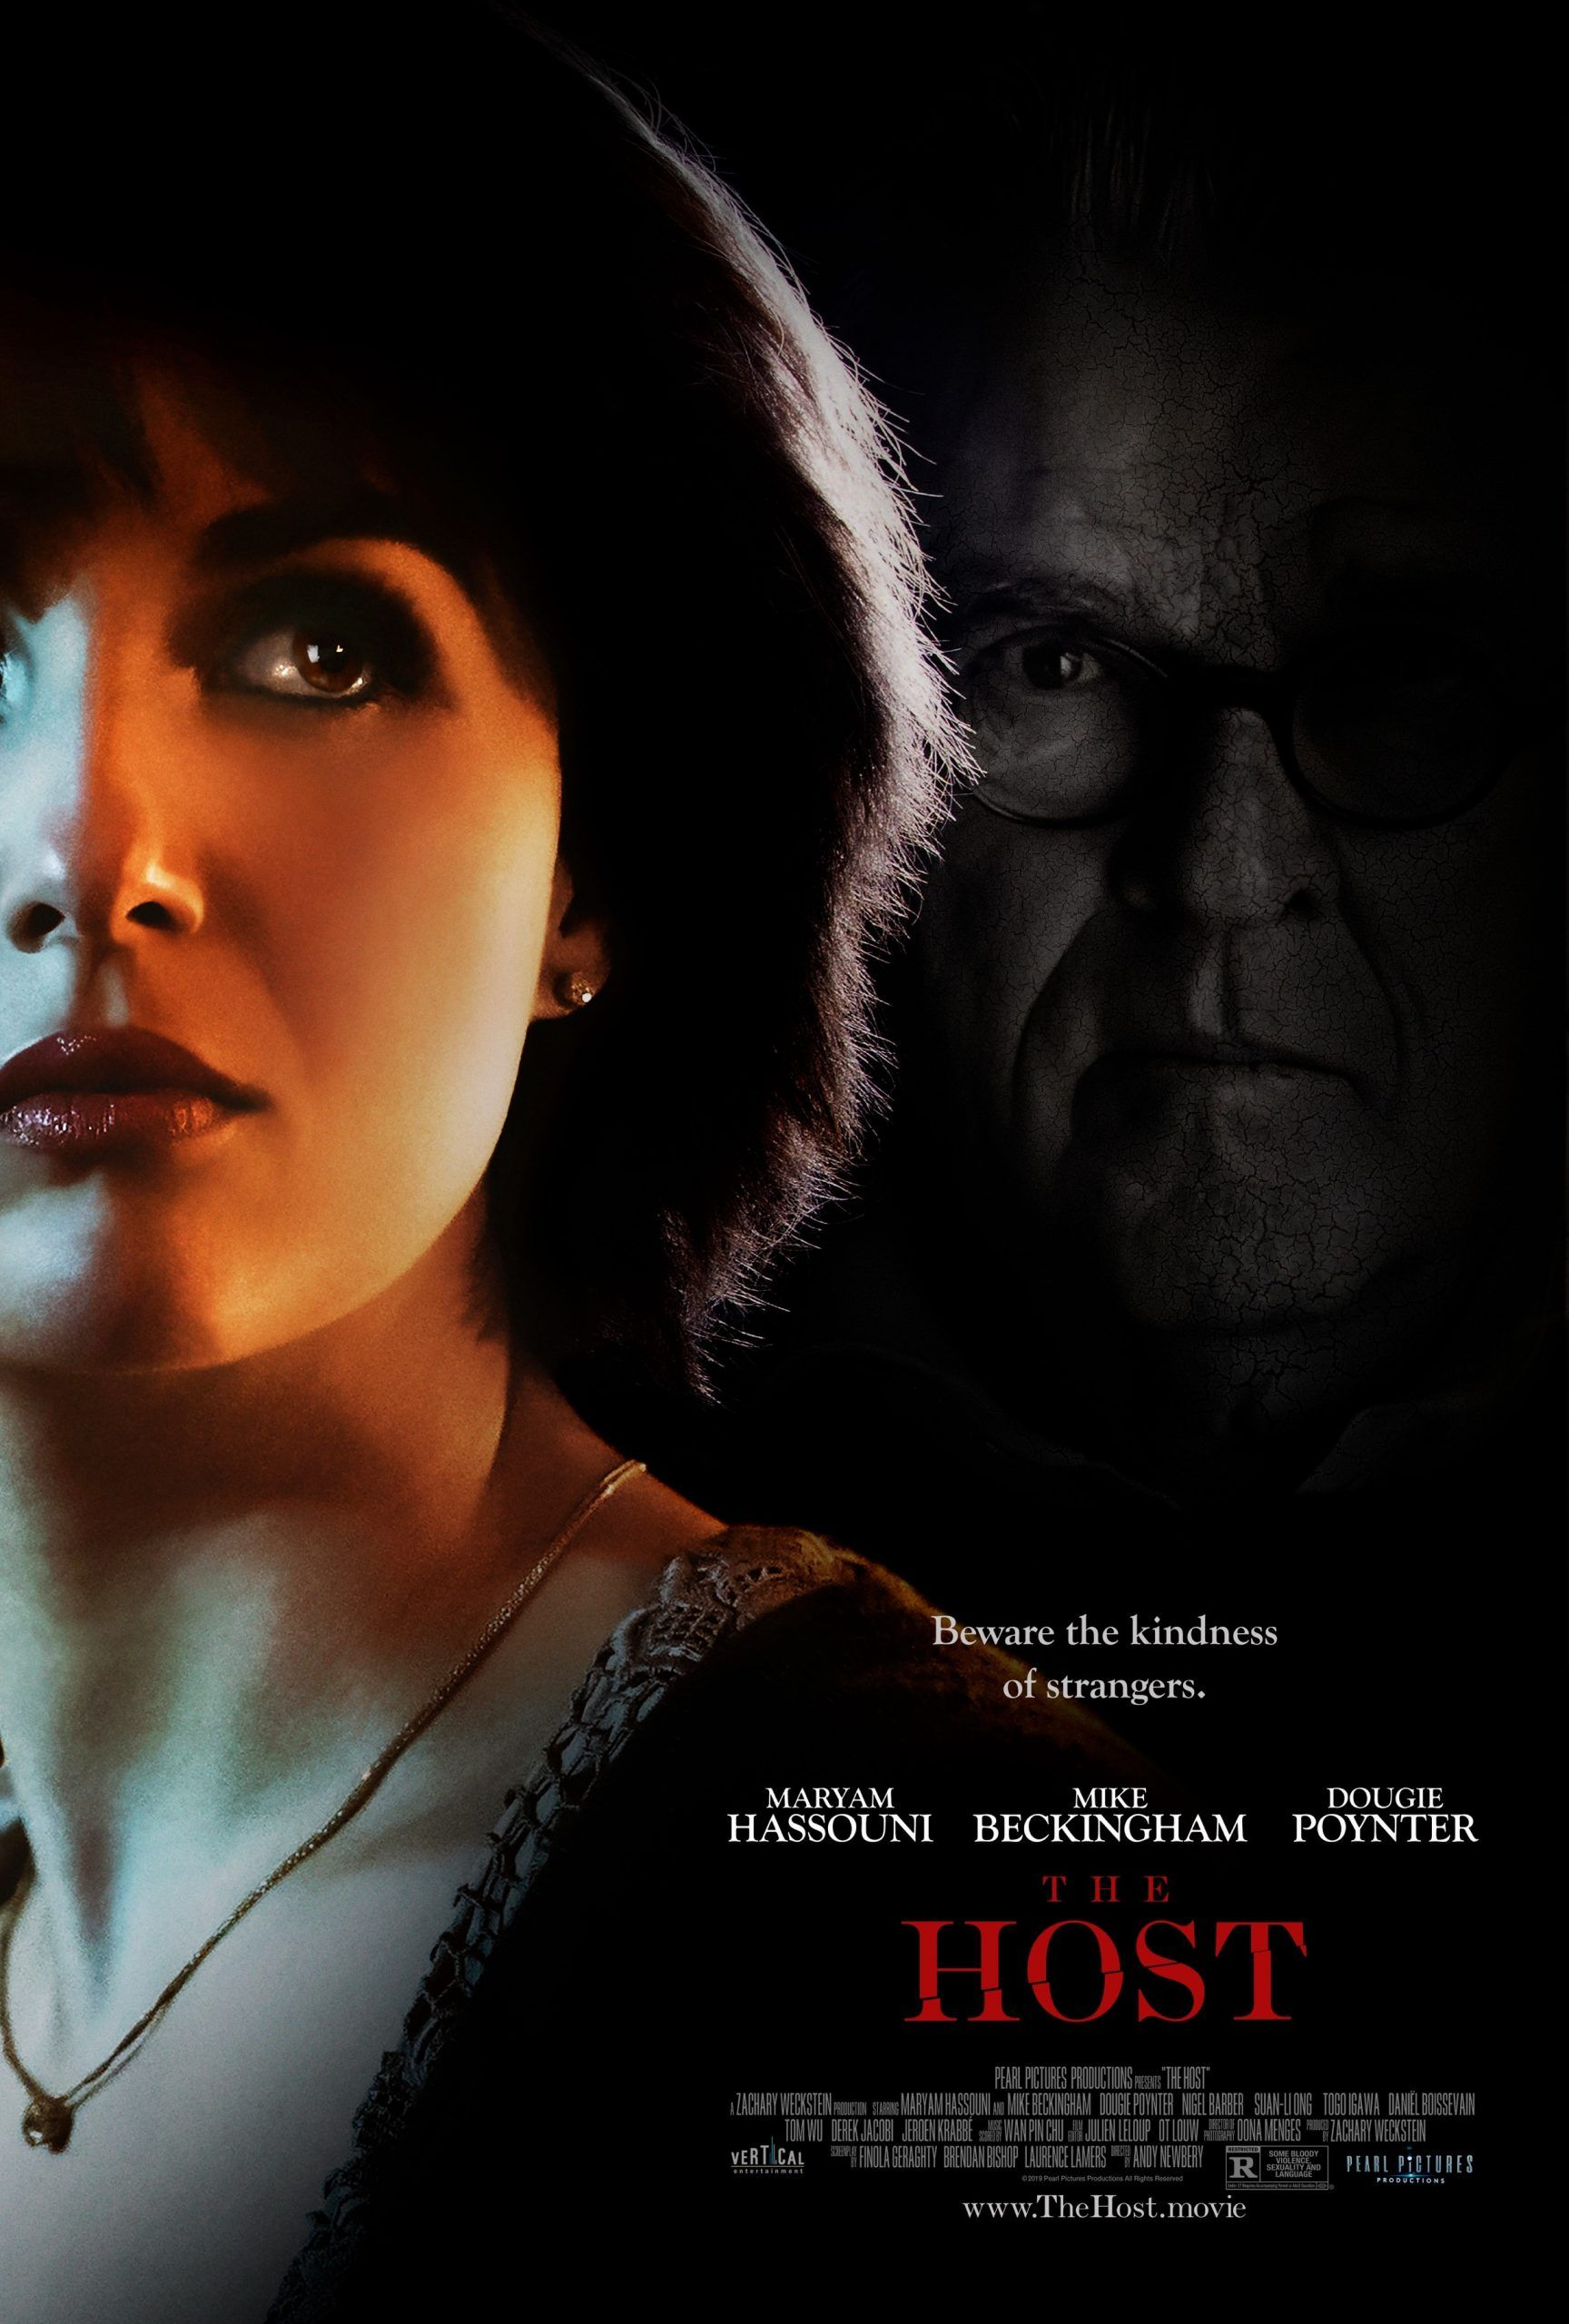 The Host 2020 Film Review Mystery Film Thriller Latest Horror Movies